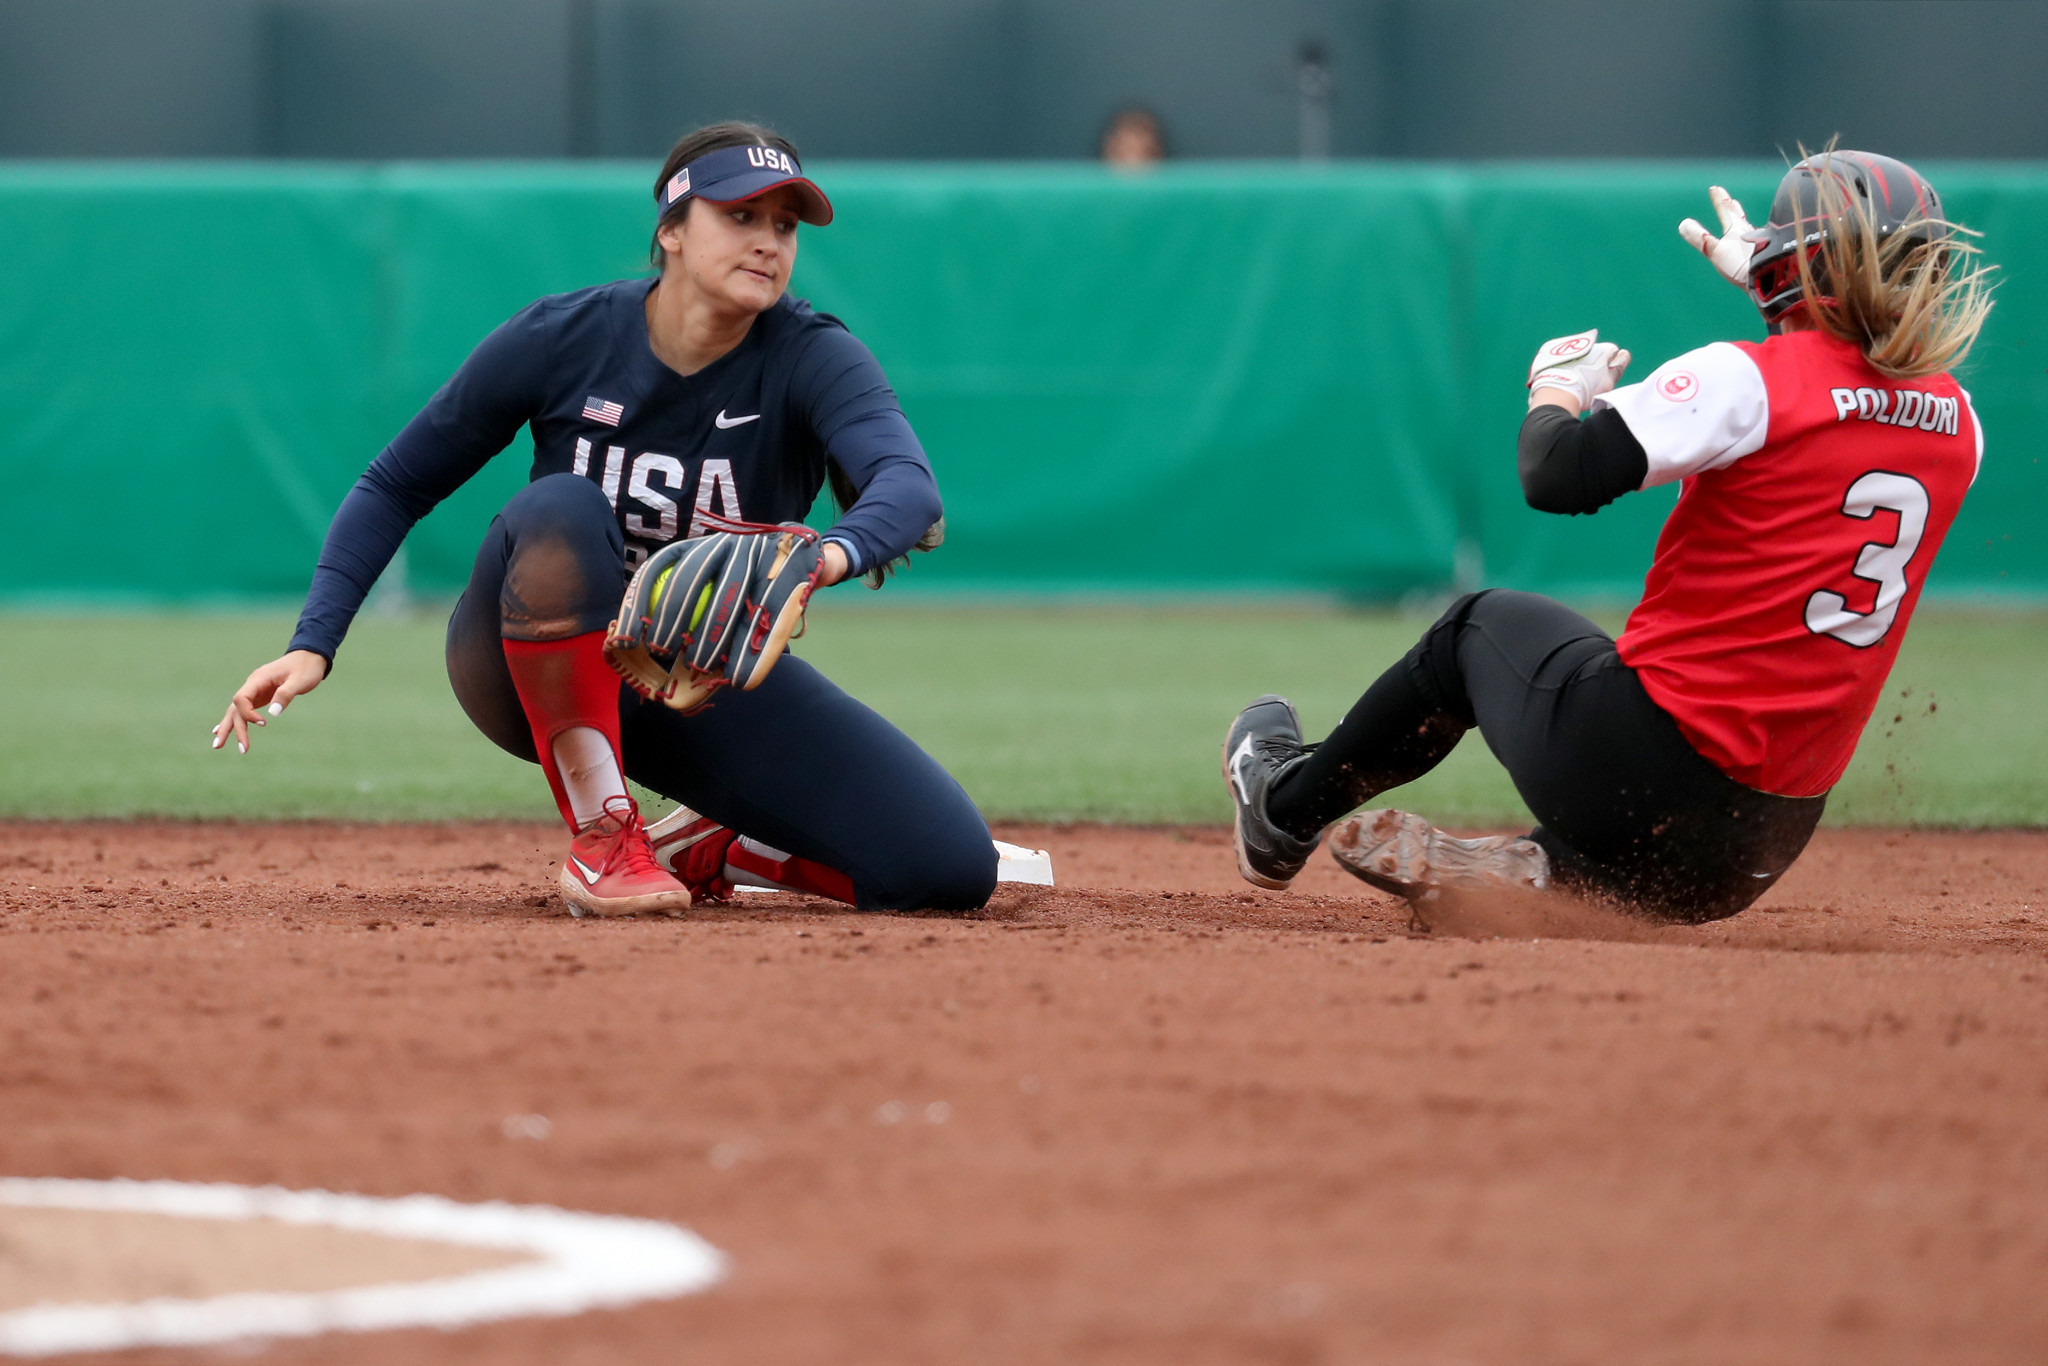 Softball is returning to the Olympics following its axing after Beijing 2008 ©Getty Images